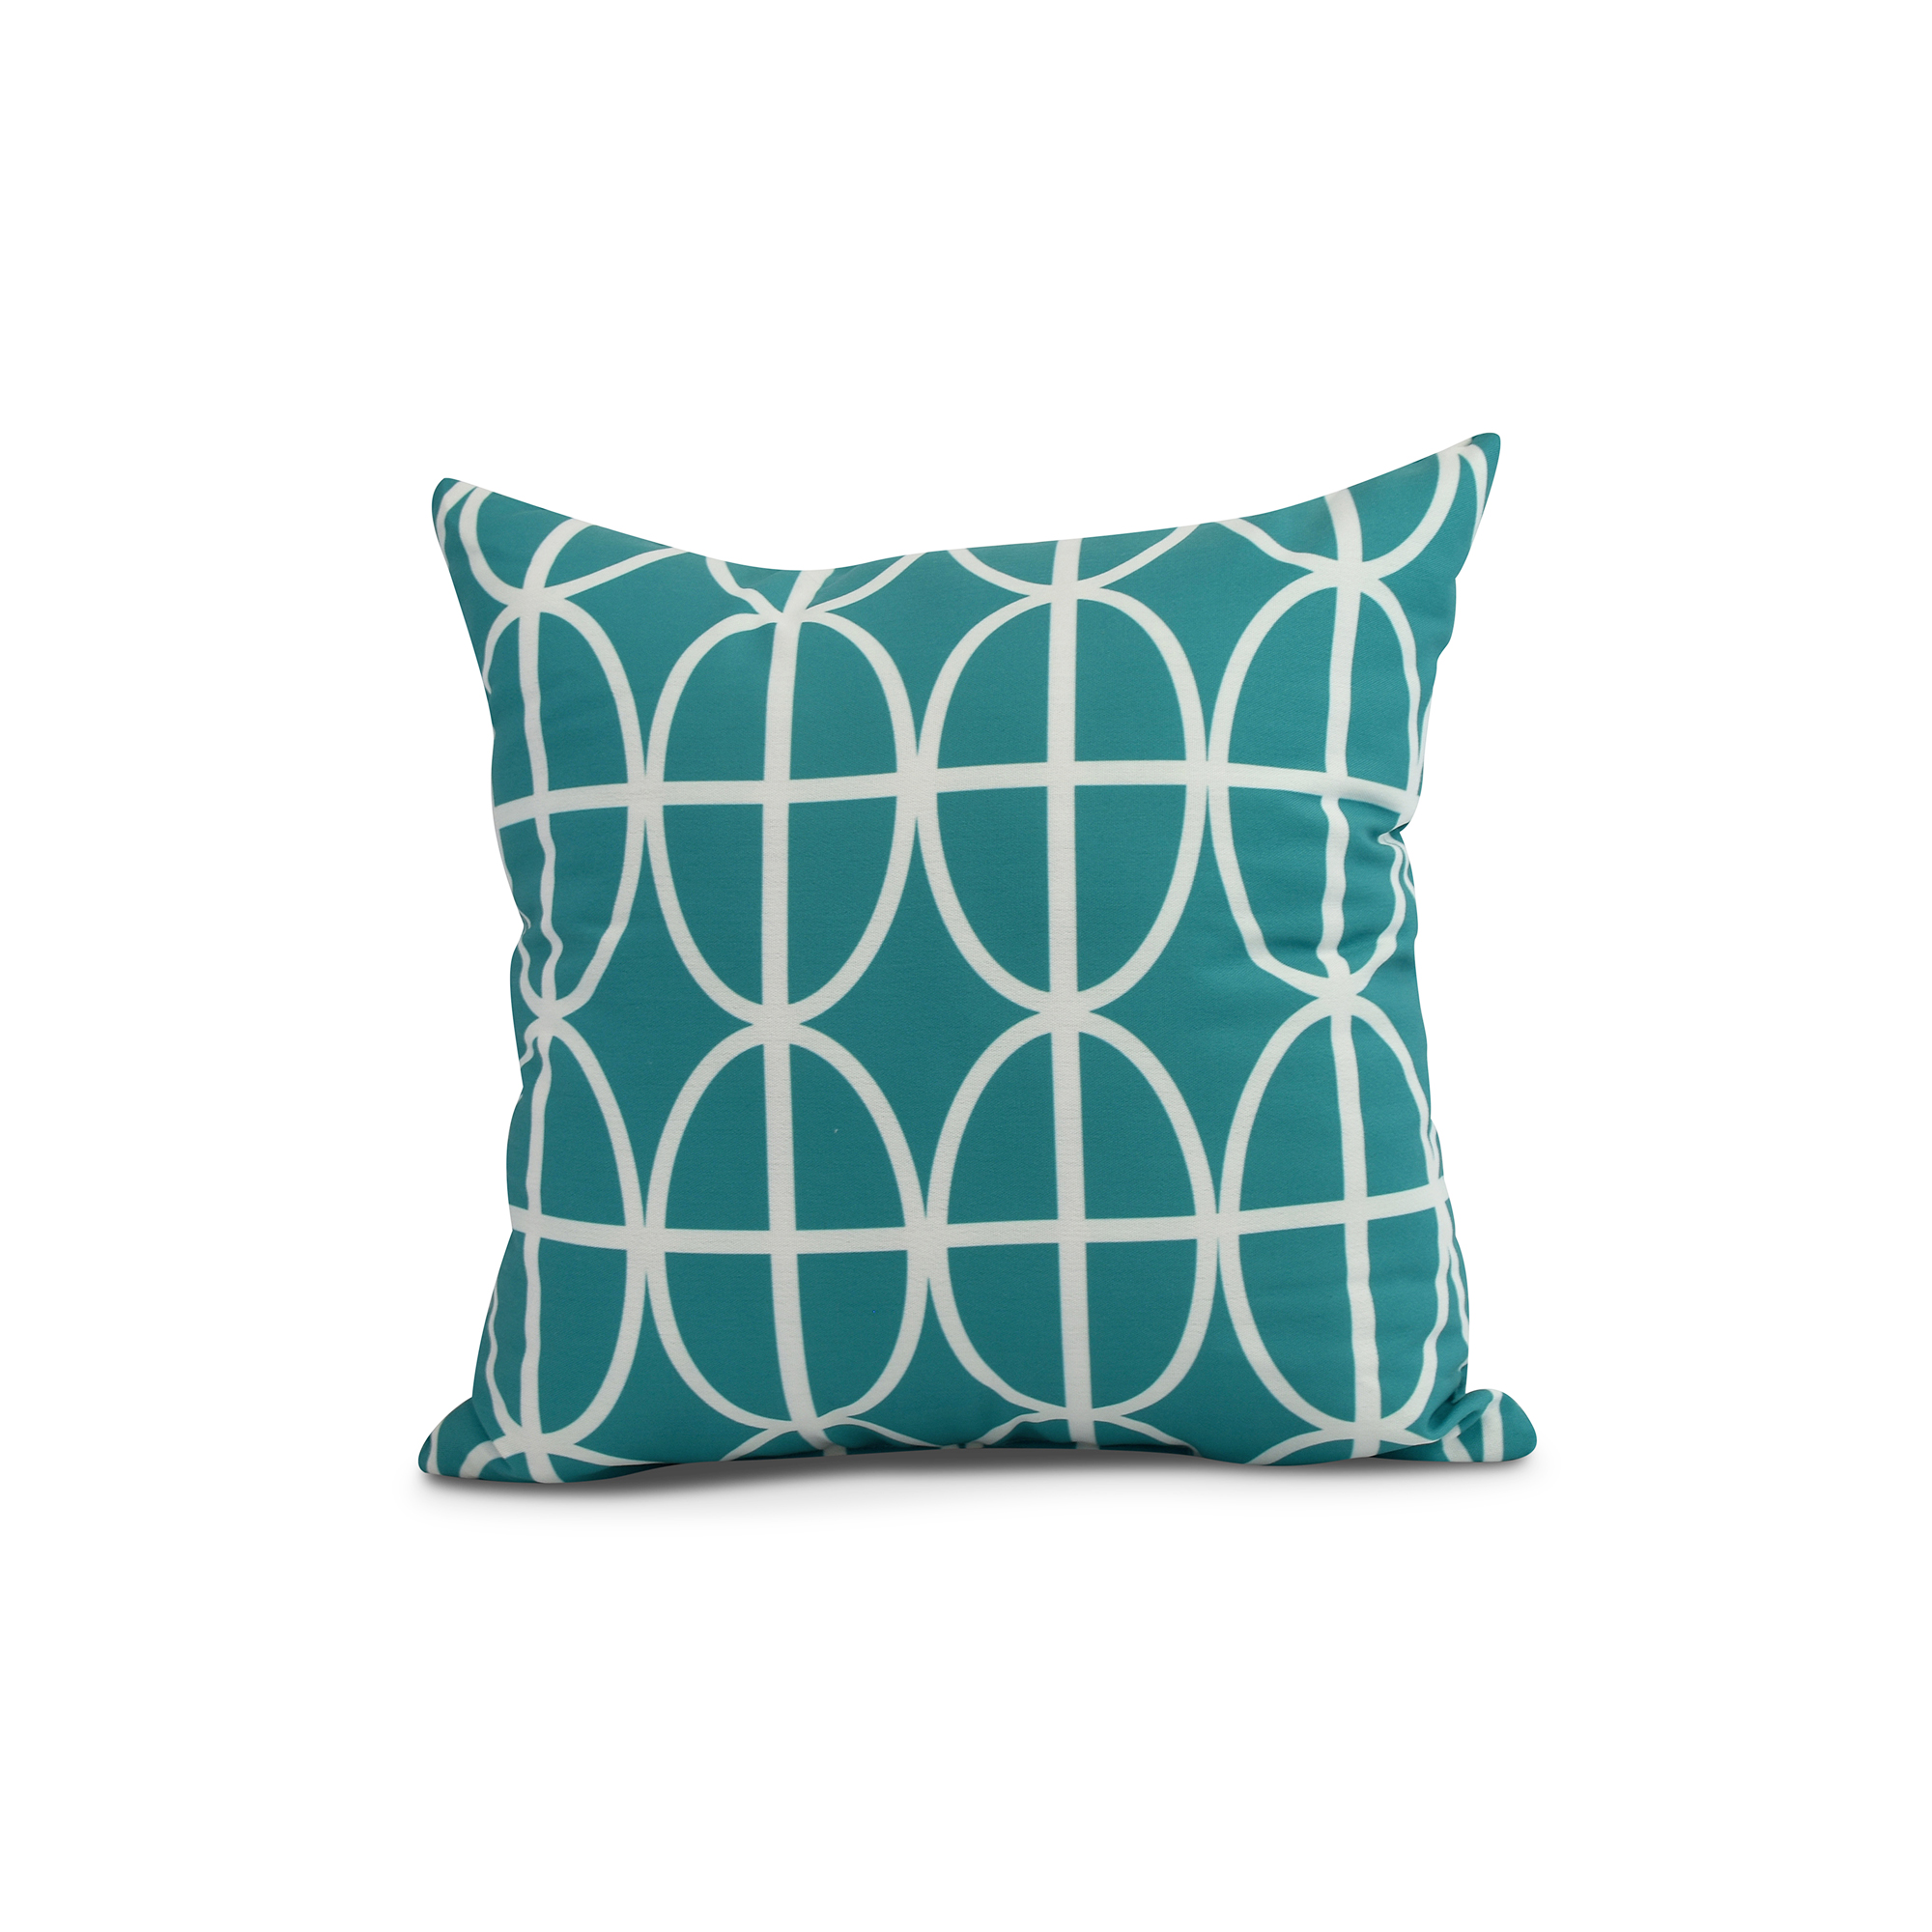 Simply Daisy, 20 x 20 inch, Ovals and Stripes Geometric Print Pillow, Blue